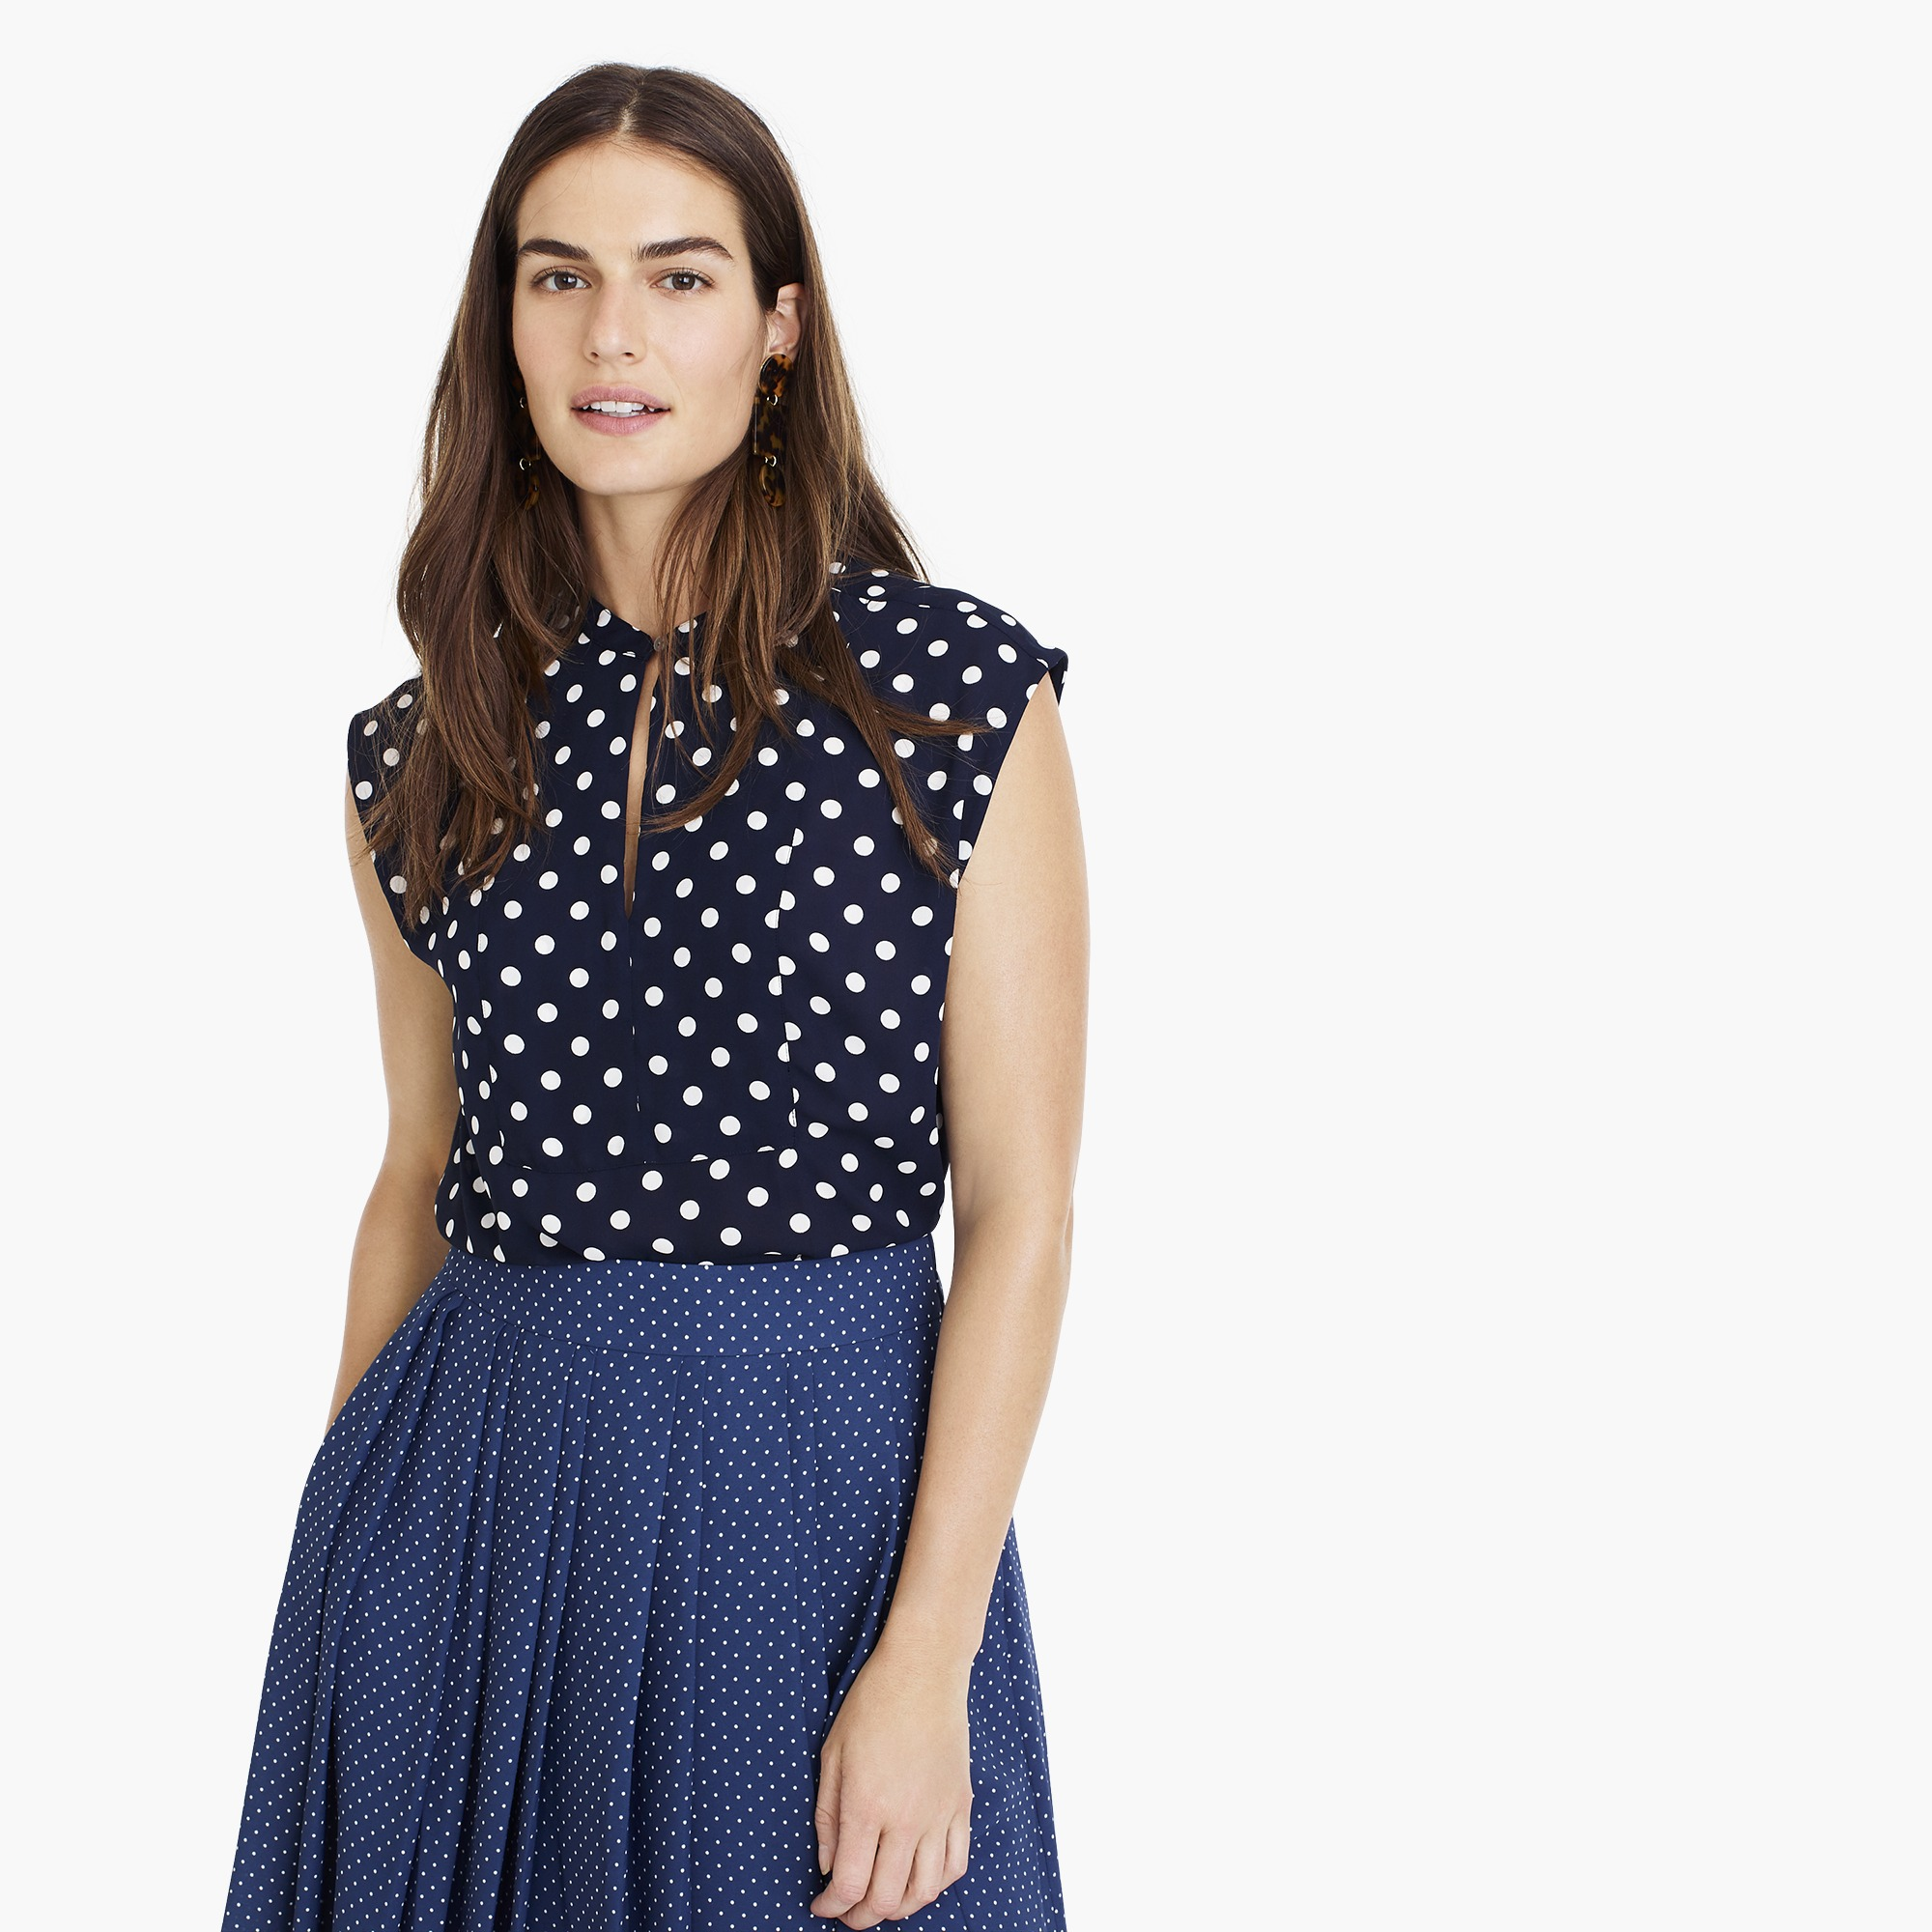 Image 1 for Drapey cap-sleeve top in polka dot